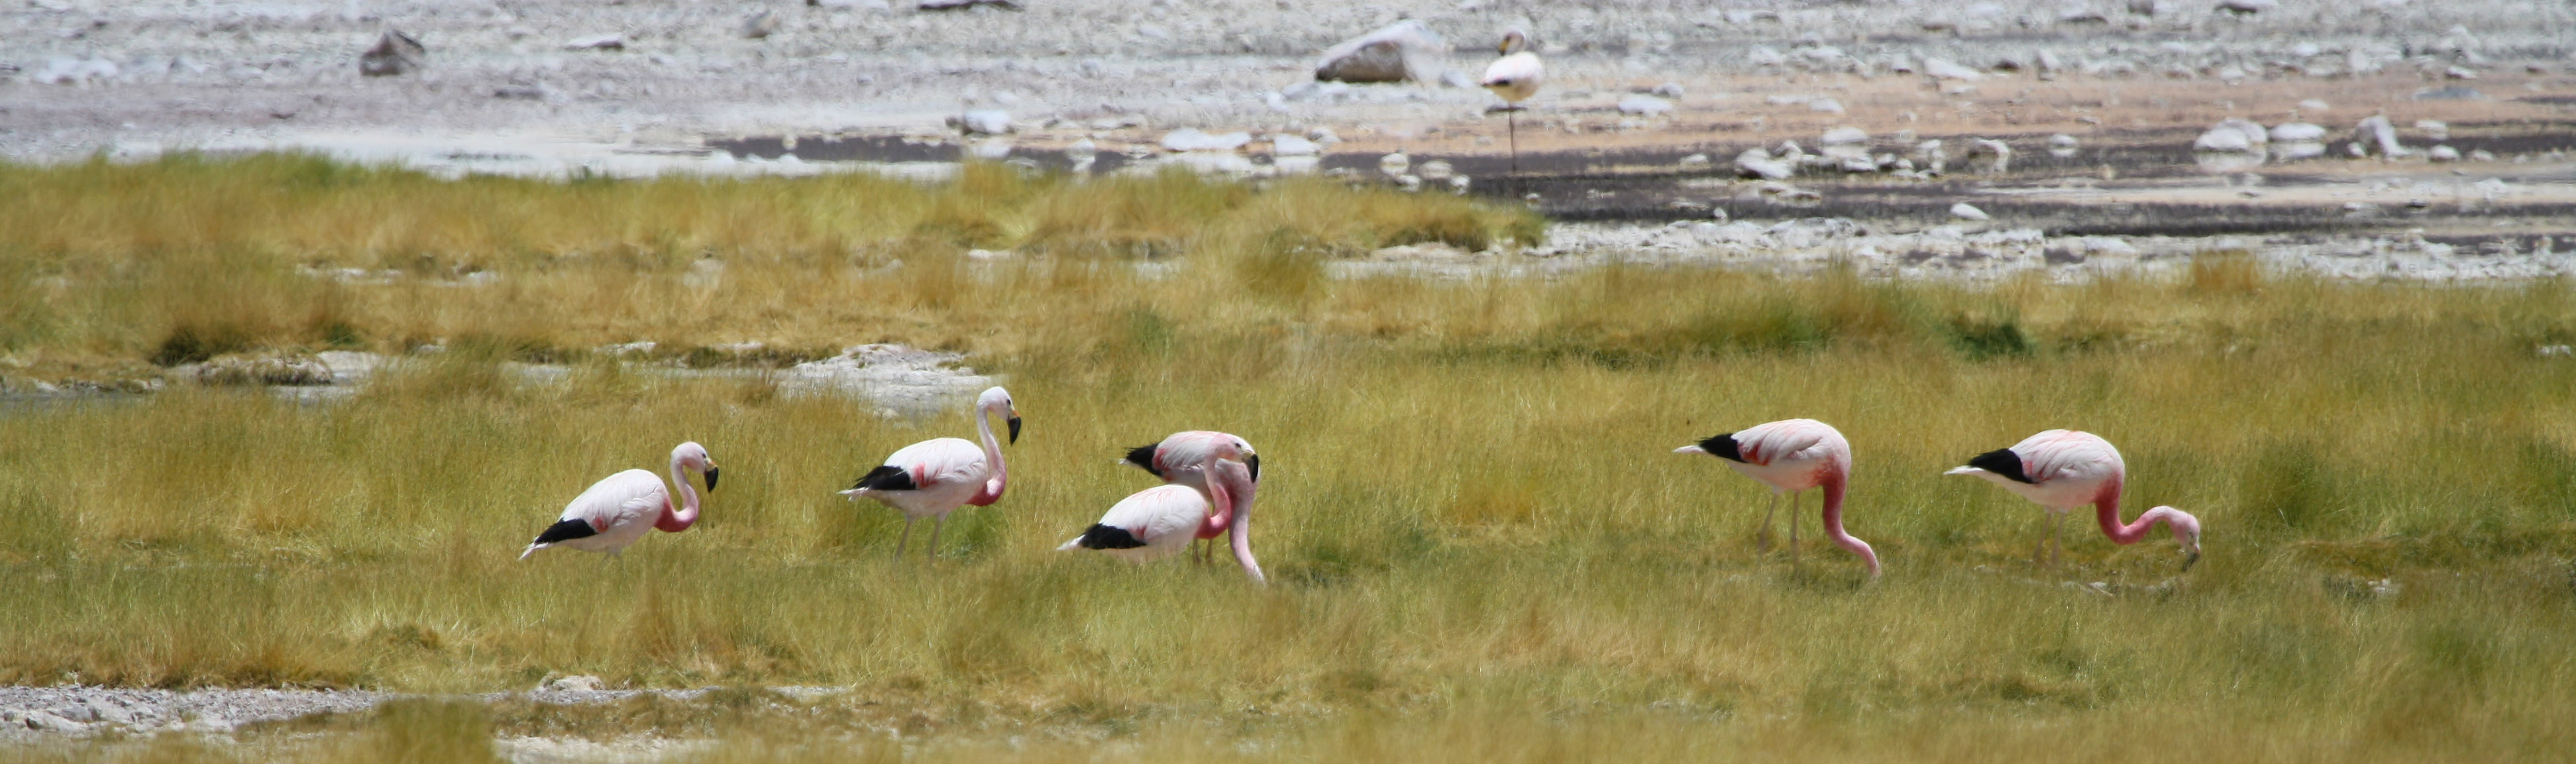 Seven flamingoes graze in a grassy wetland area.